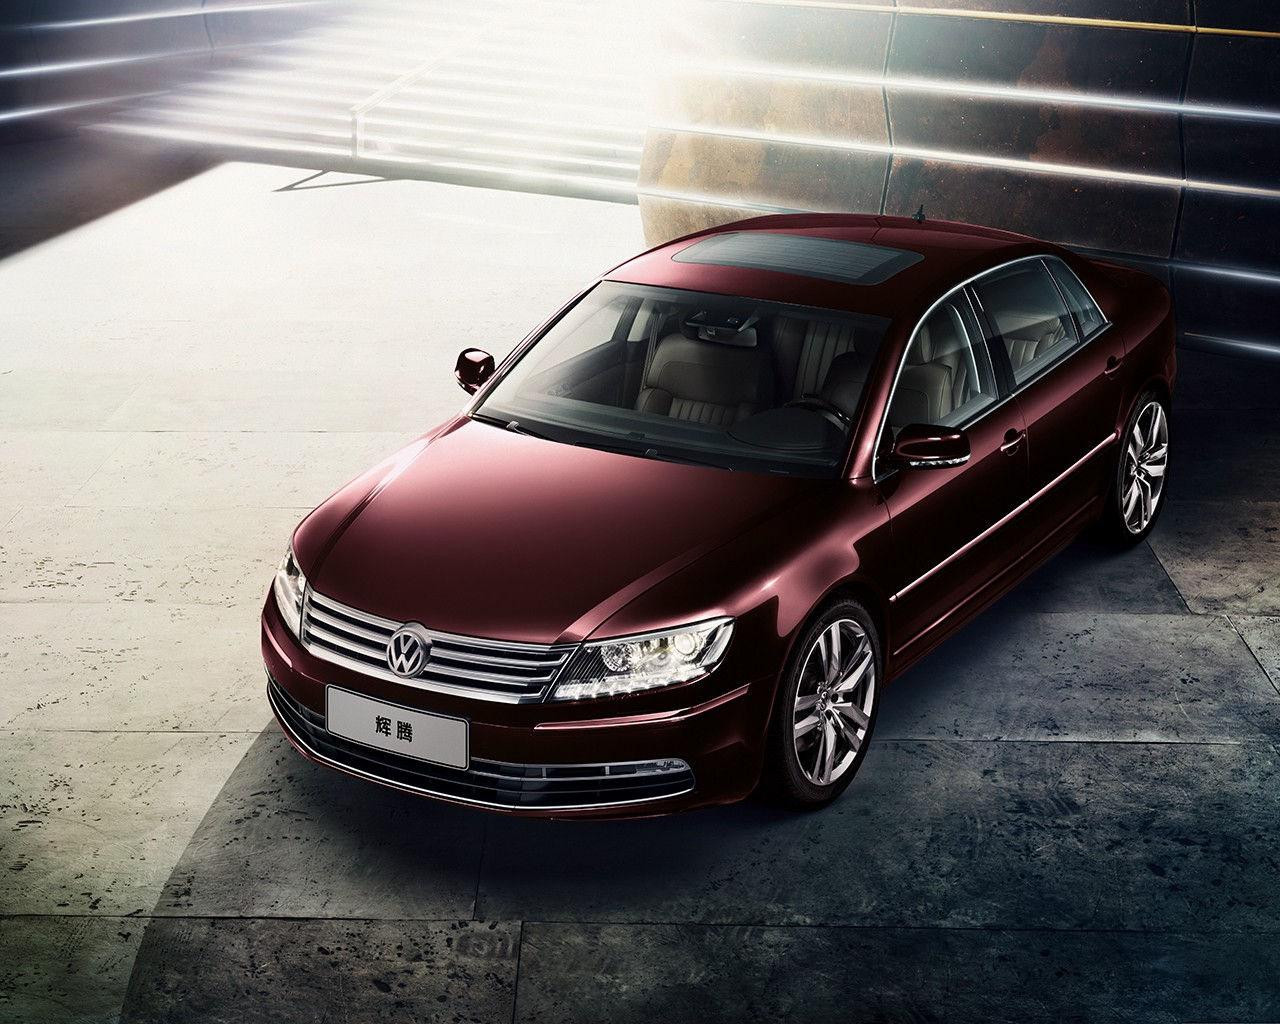 Fastest Car In The World 2015 >> 2015 Volkswagen Phaeton Gets Cosmetic Tweaks in China ...